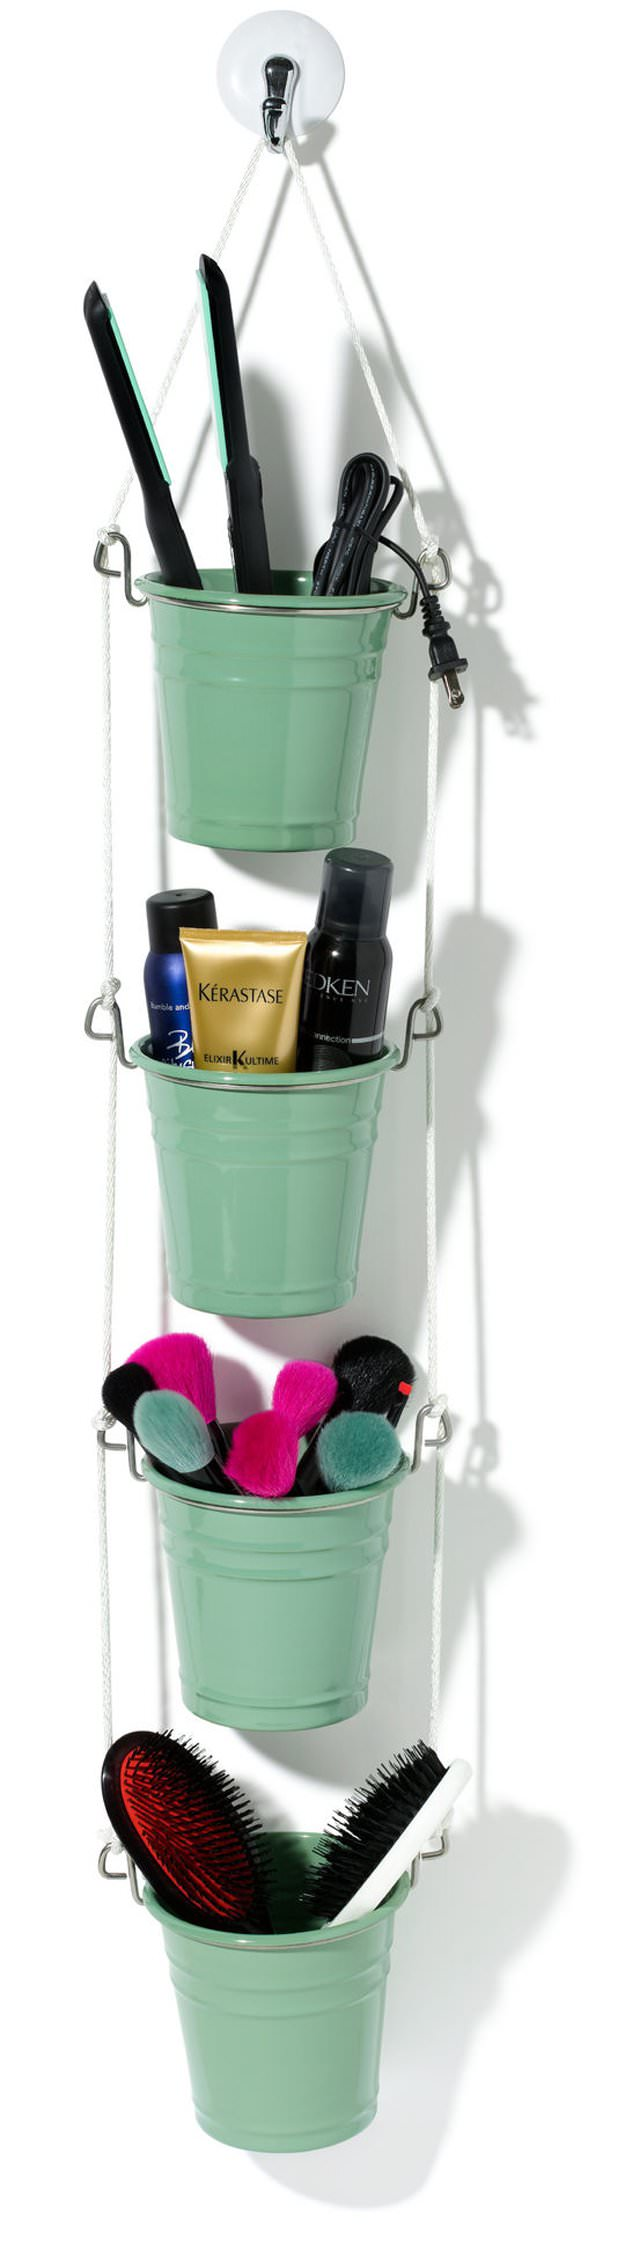 Not only organize but also beautify your bathroom in less than half an hour with these 15 Bathroom Organization Ideas. Check out!